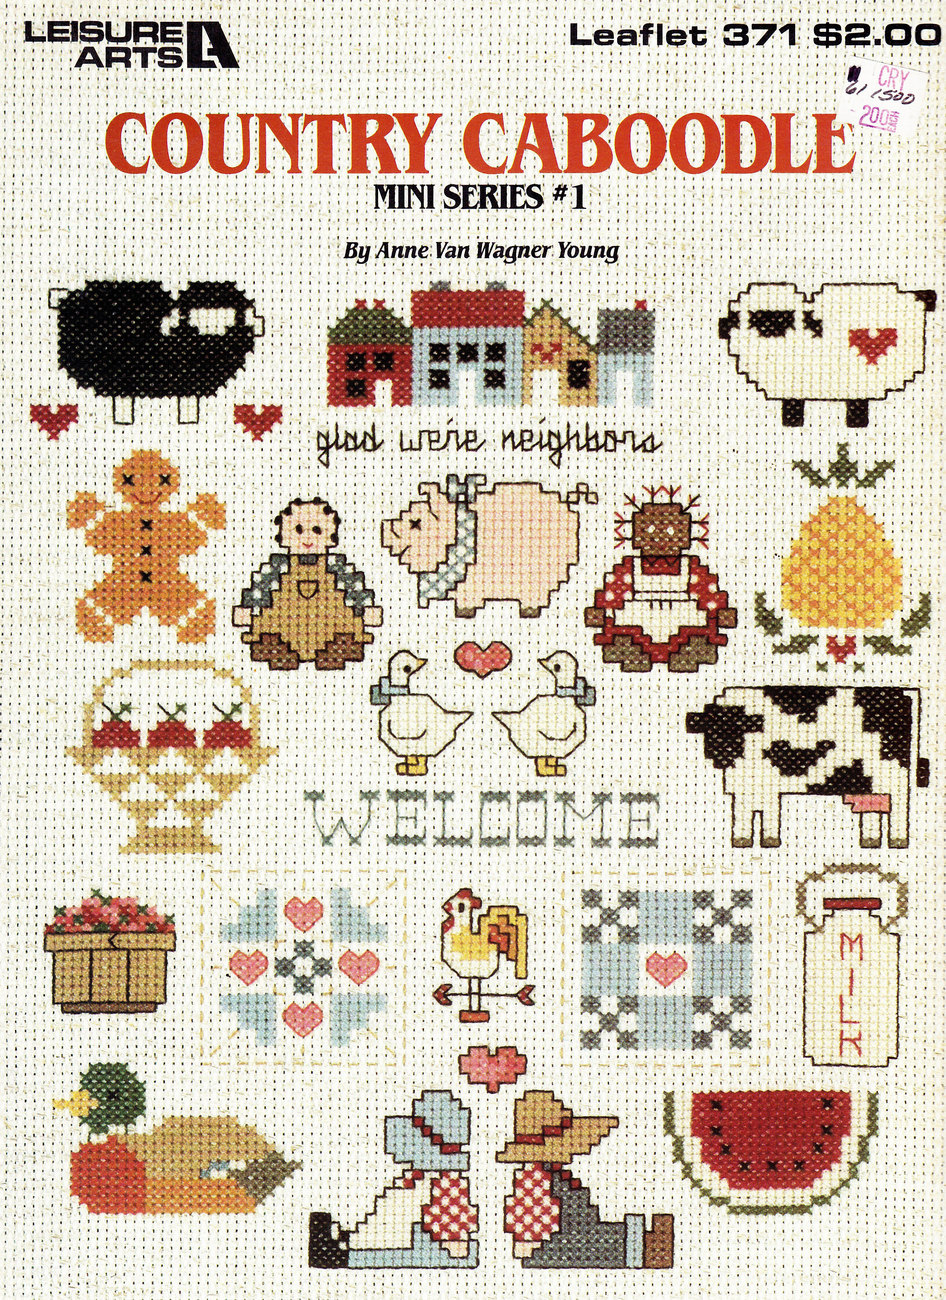 COUNTED CROSS STITCH COUNTRY CABOODLE MINI SERIES #1 LEAFLET